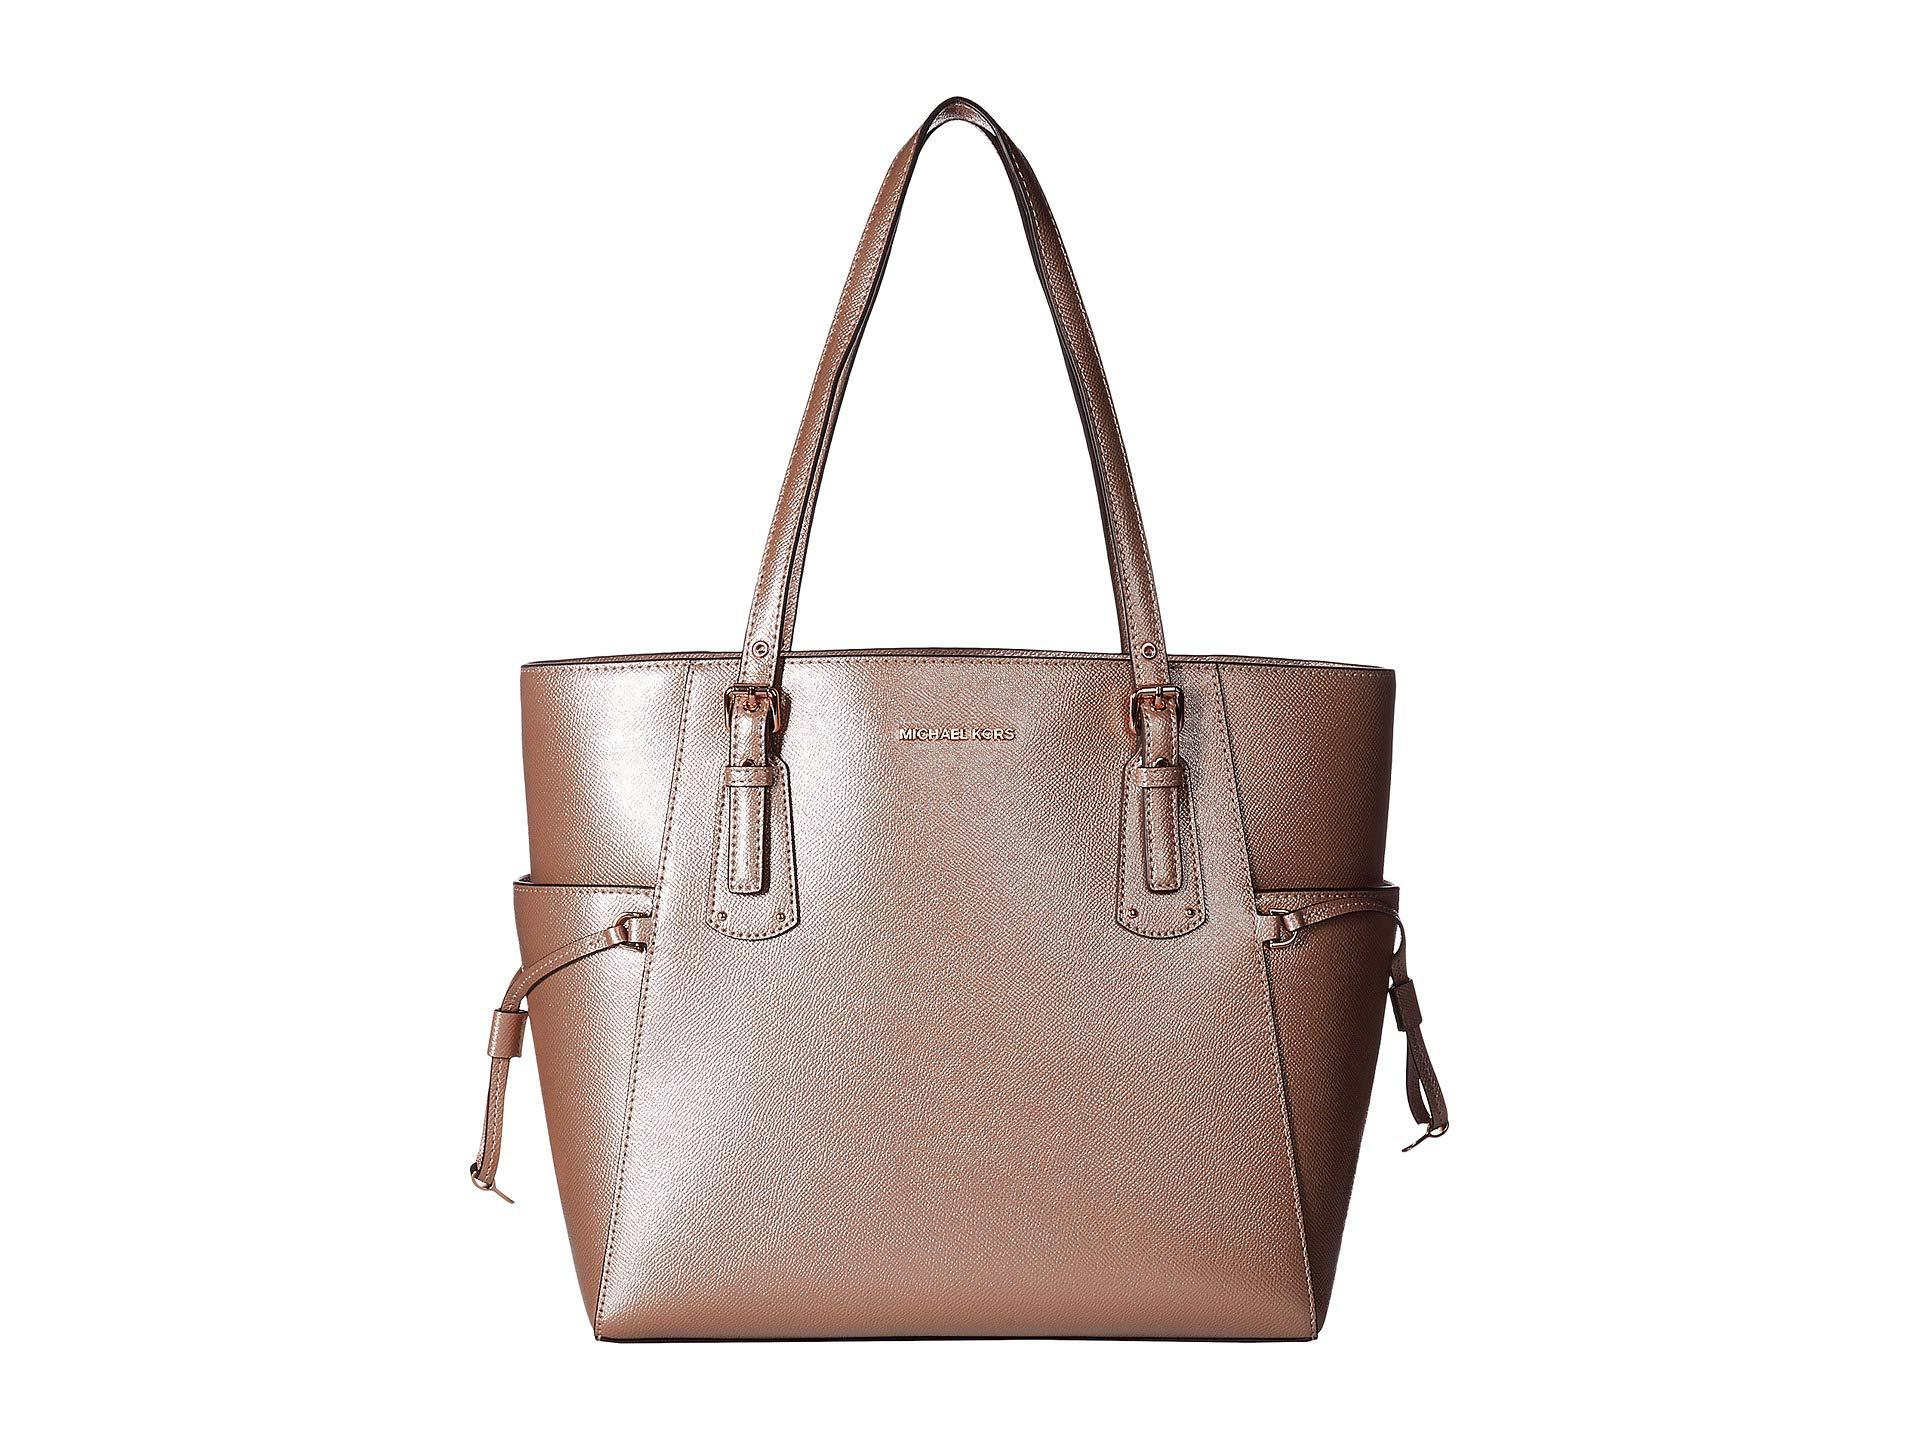 bbb227f54a Lyst - MICHAEL Michael Kors Voyager East west Tote (ballet) Tote ...